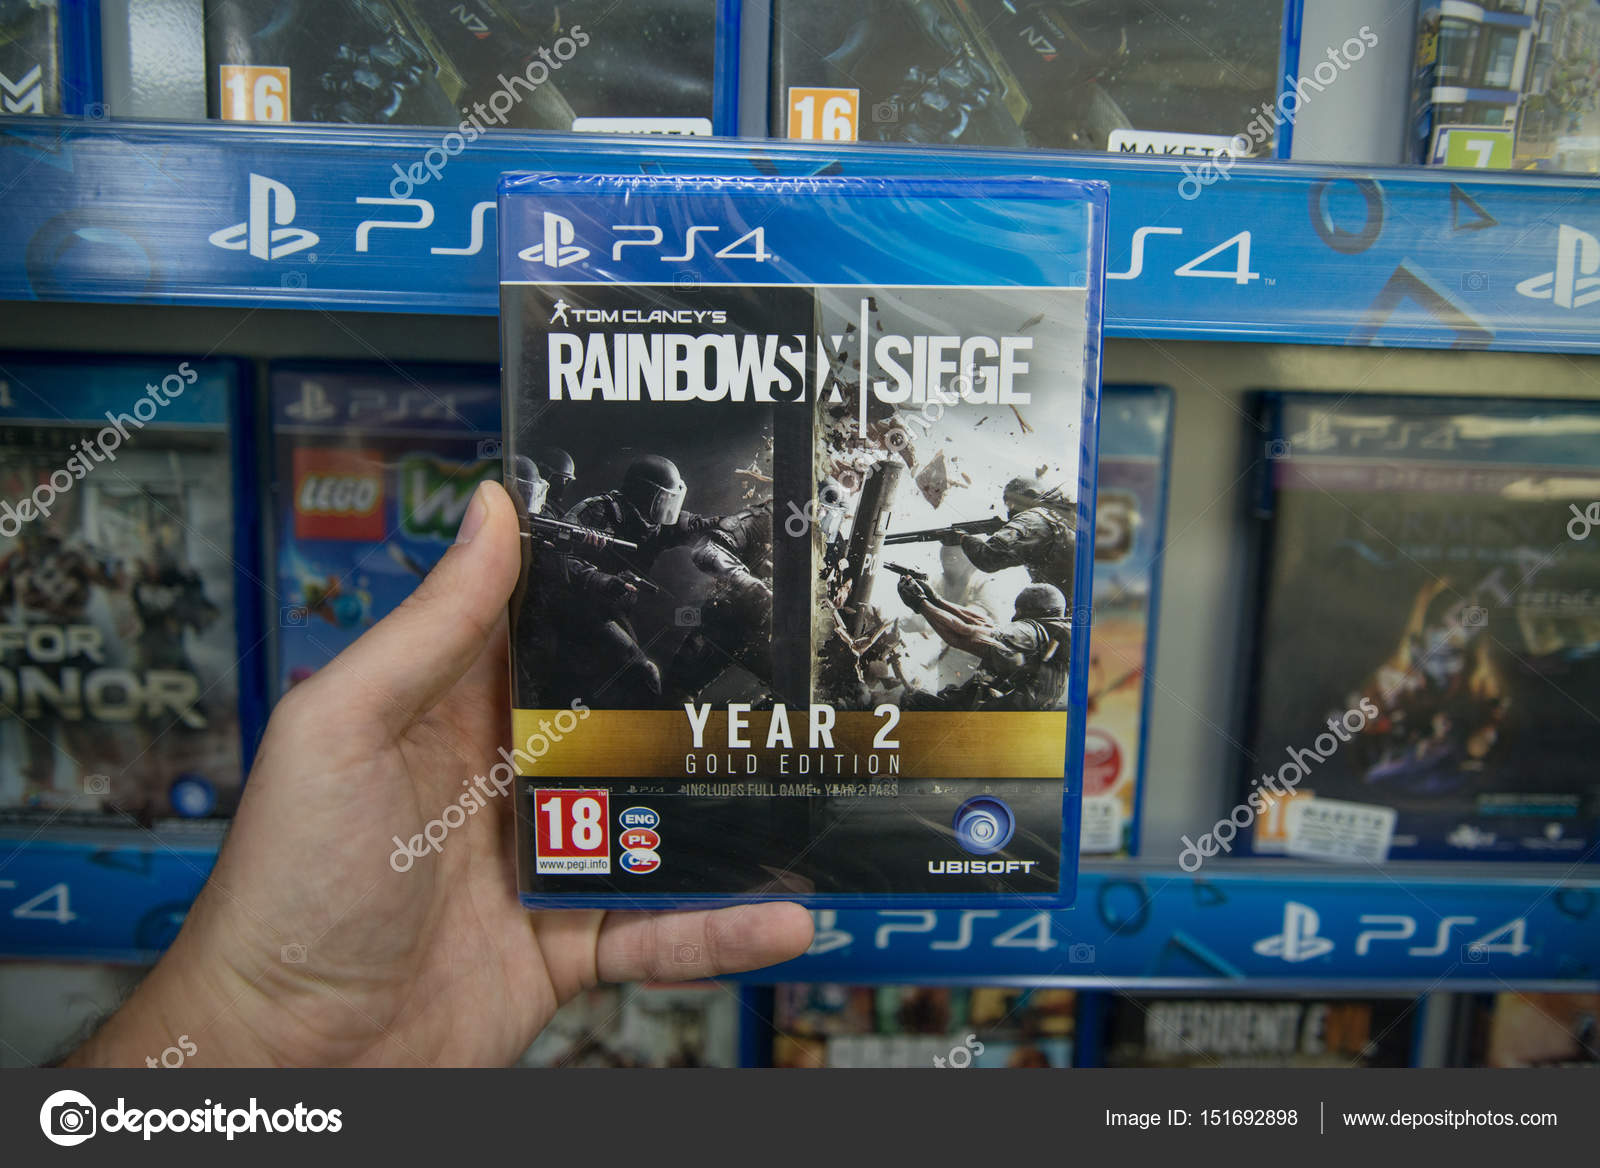 Bratislava, Slovakia, circa april 2017: Man holding Tom Clancy's Rainbow six siege year 2 gold edition videogame on Sony Playstation 4 console in store ...